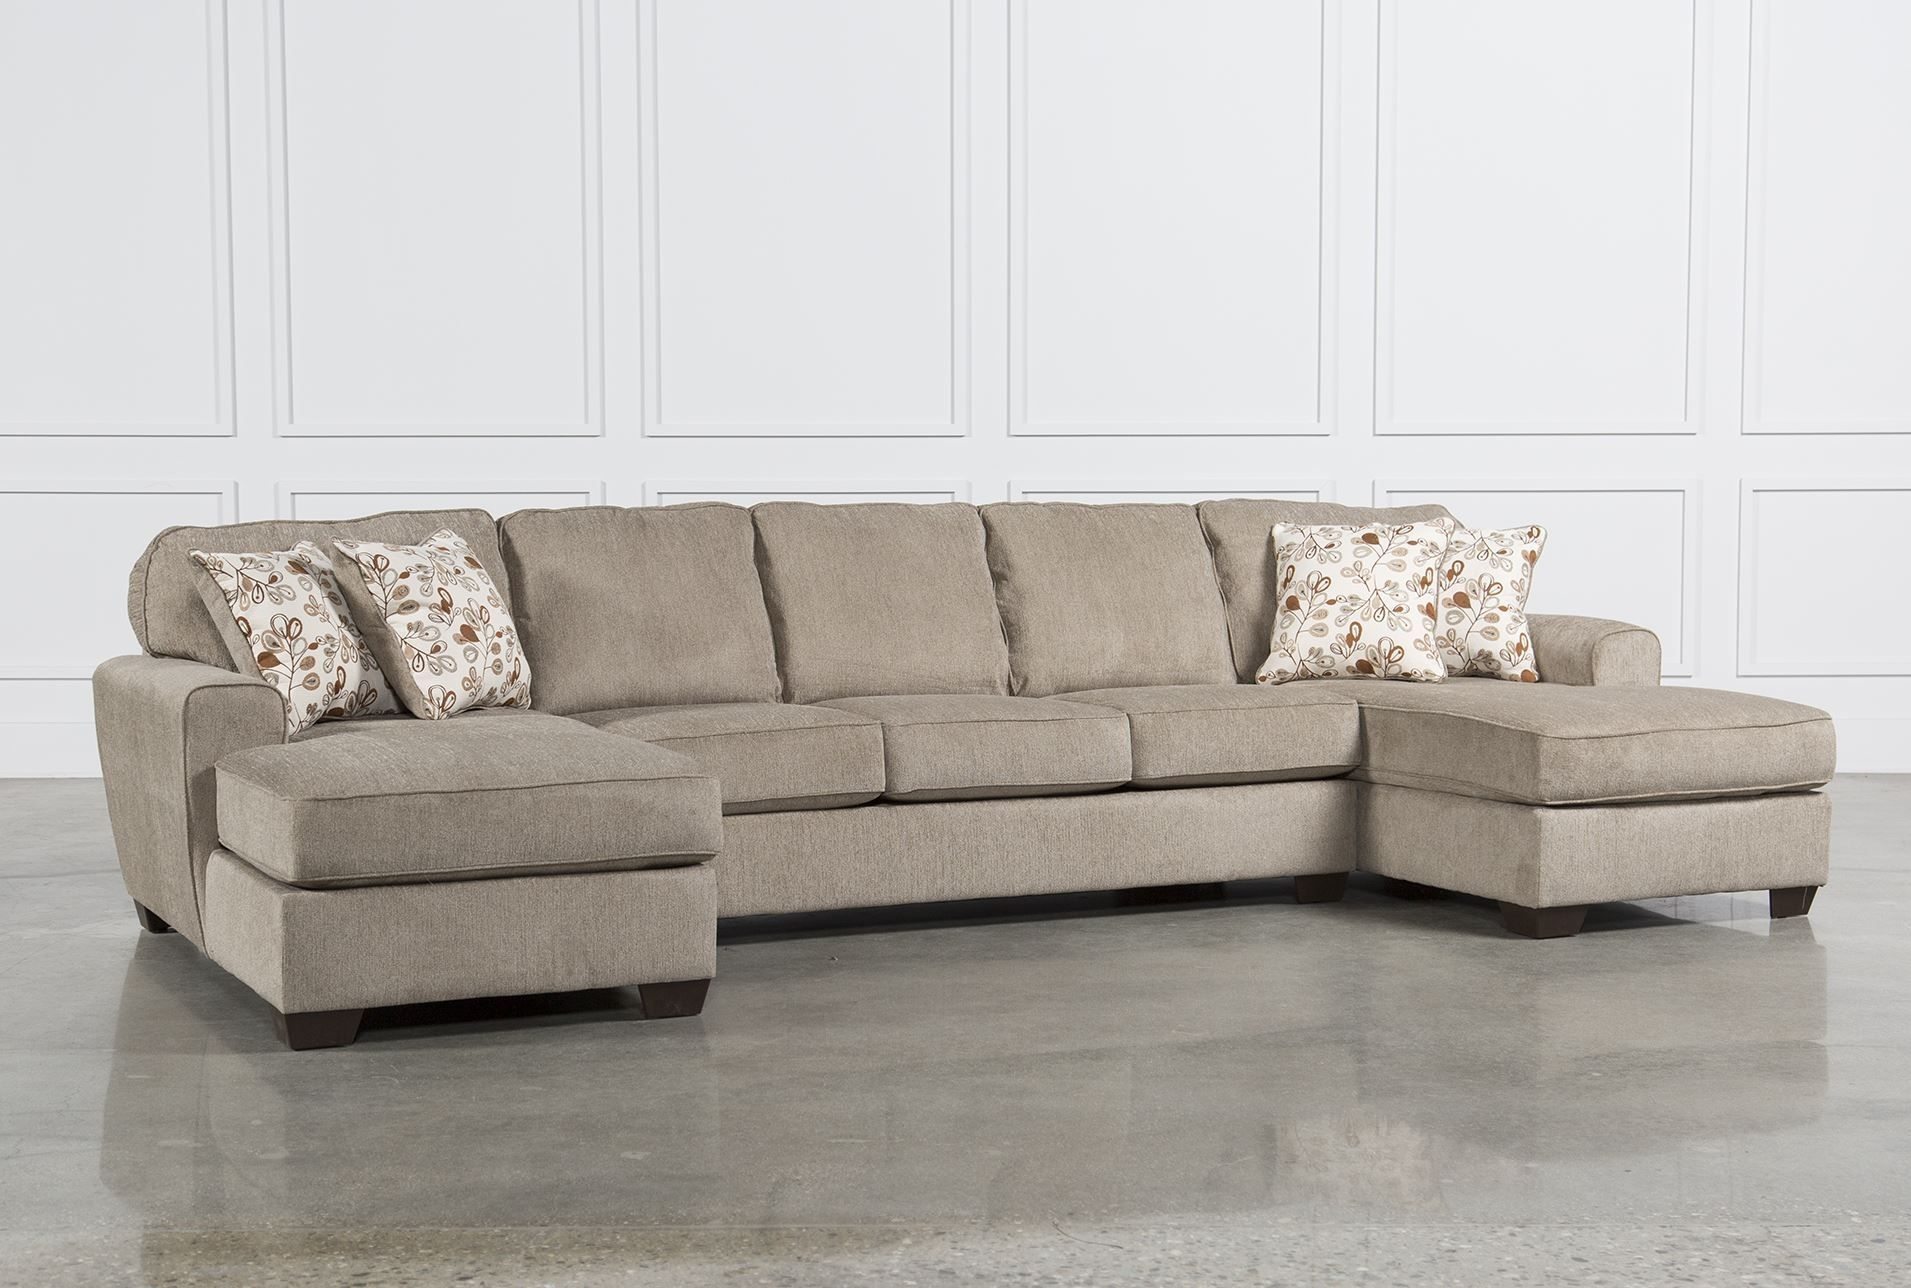 Patola Park 3 Piece Sectional W/2 Corner Chaises - Signature throughout Avery 2 Piece Sectionals With Laf Armless Chaise (Image 22 of 30)